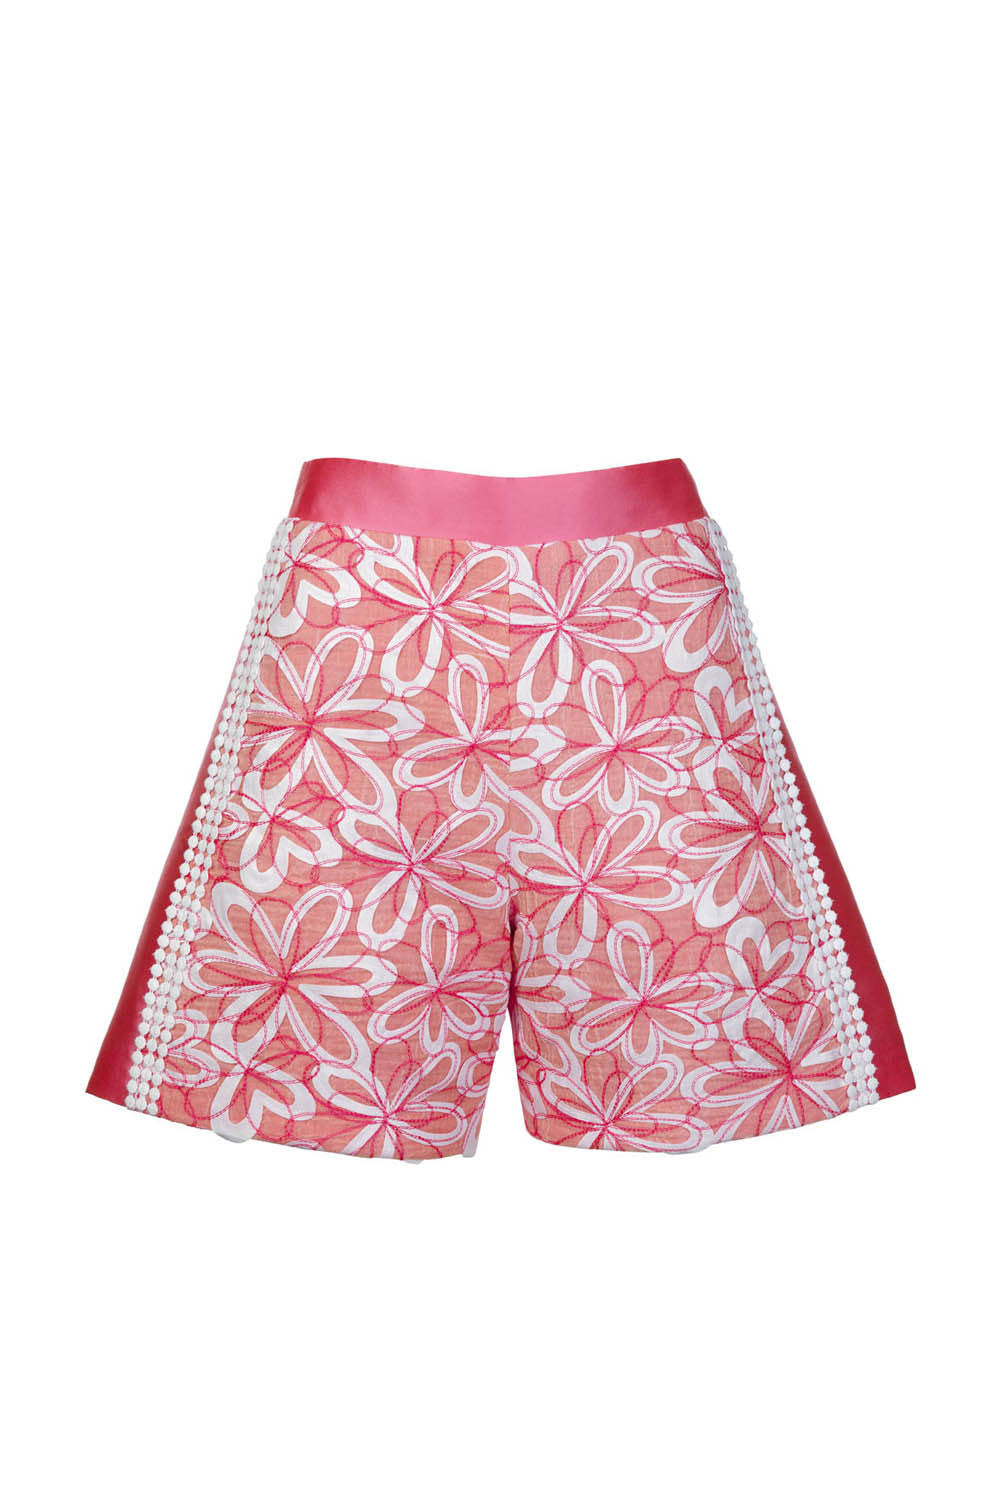 Lola Shorts - Womenswear Outlet - Madderson London